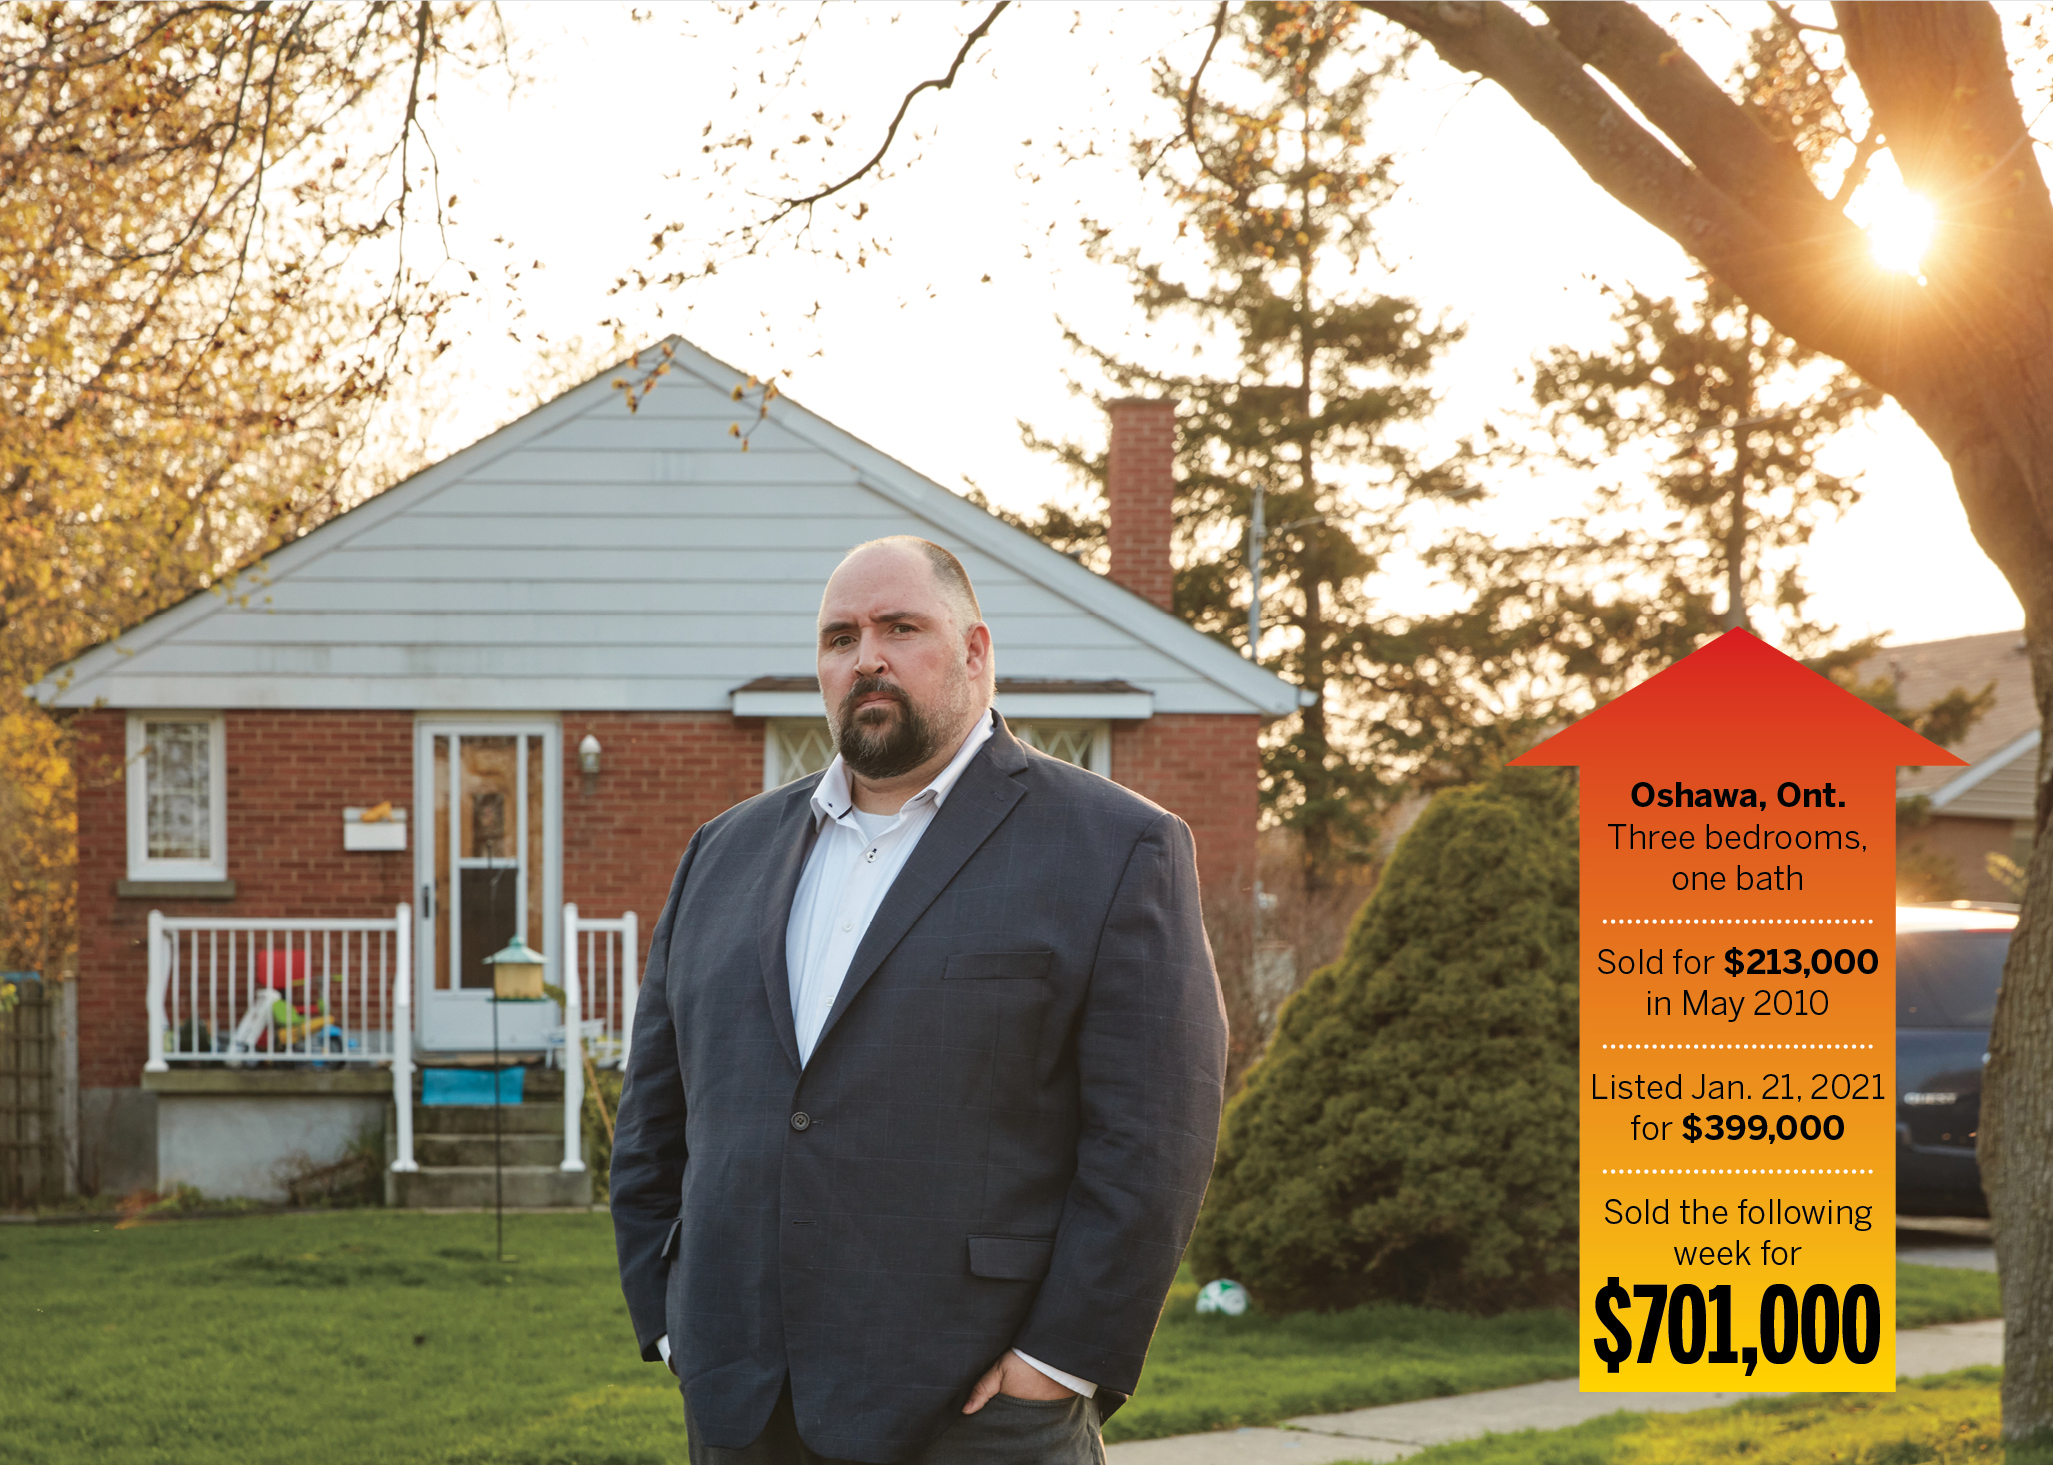 James Haehnel and his wife bid $195,000 above asking on this Oshawa house, only to have it sell for $302,000 over asking; it 'really broke us,' he says (Photograph by Carmen Cheung)